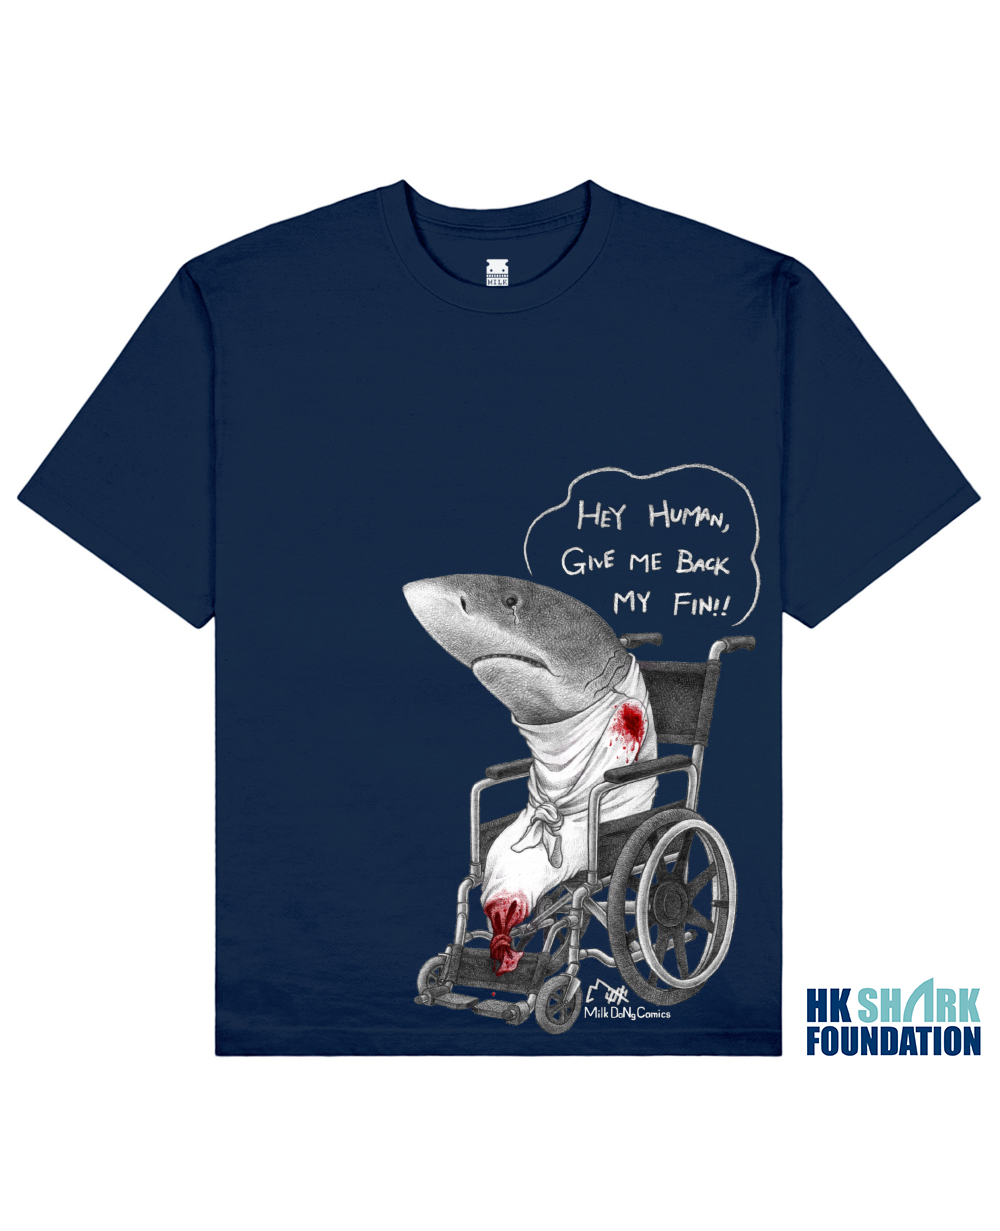 FINLESS SHARK Printed T-Shirt in Blue - T-Shirts - Milk DoNg Comics - BRANMA